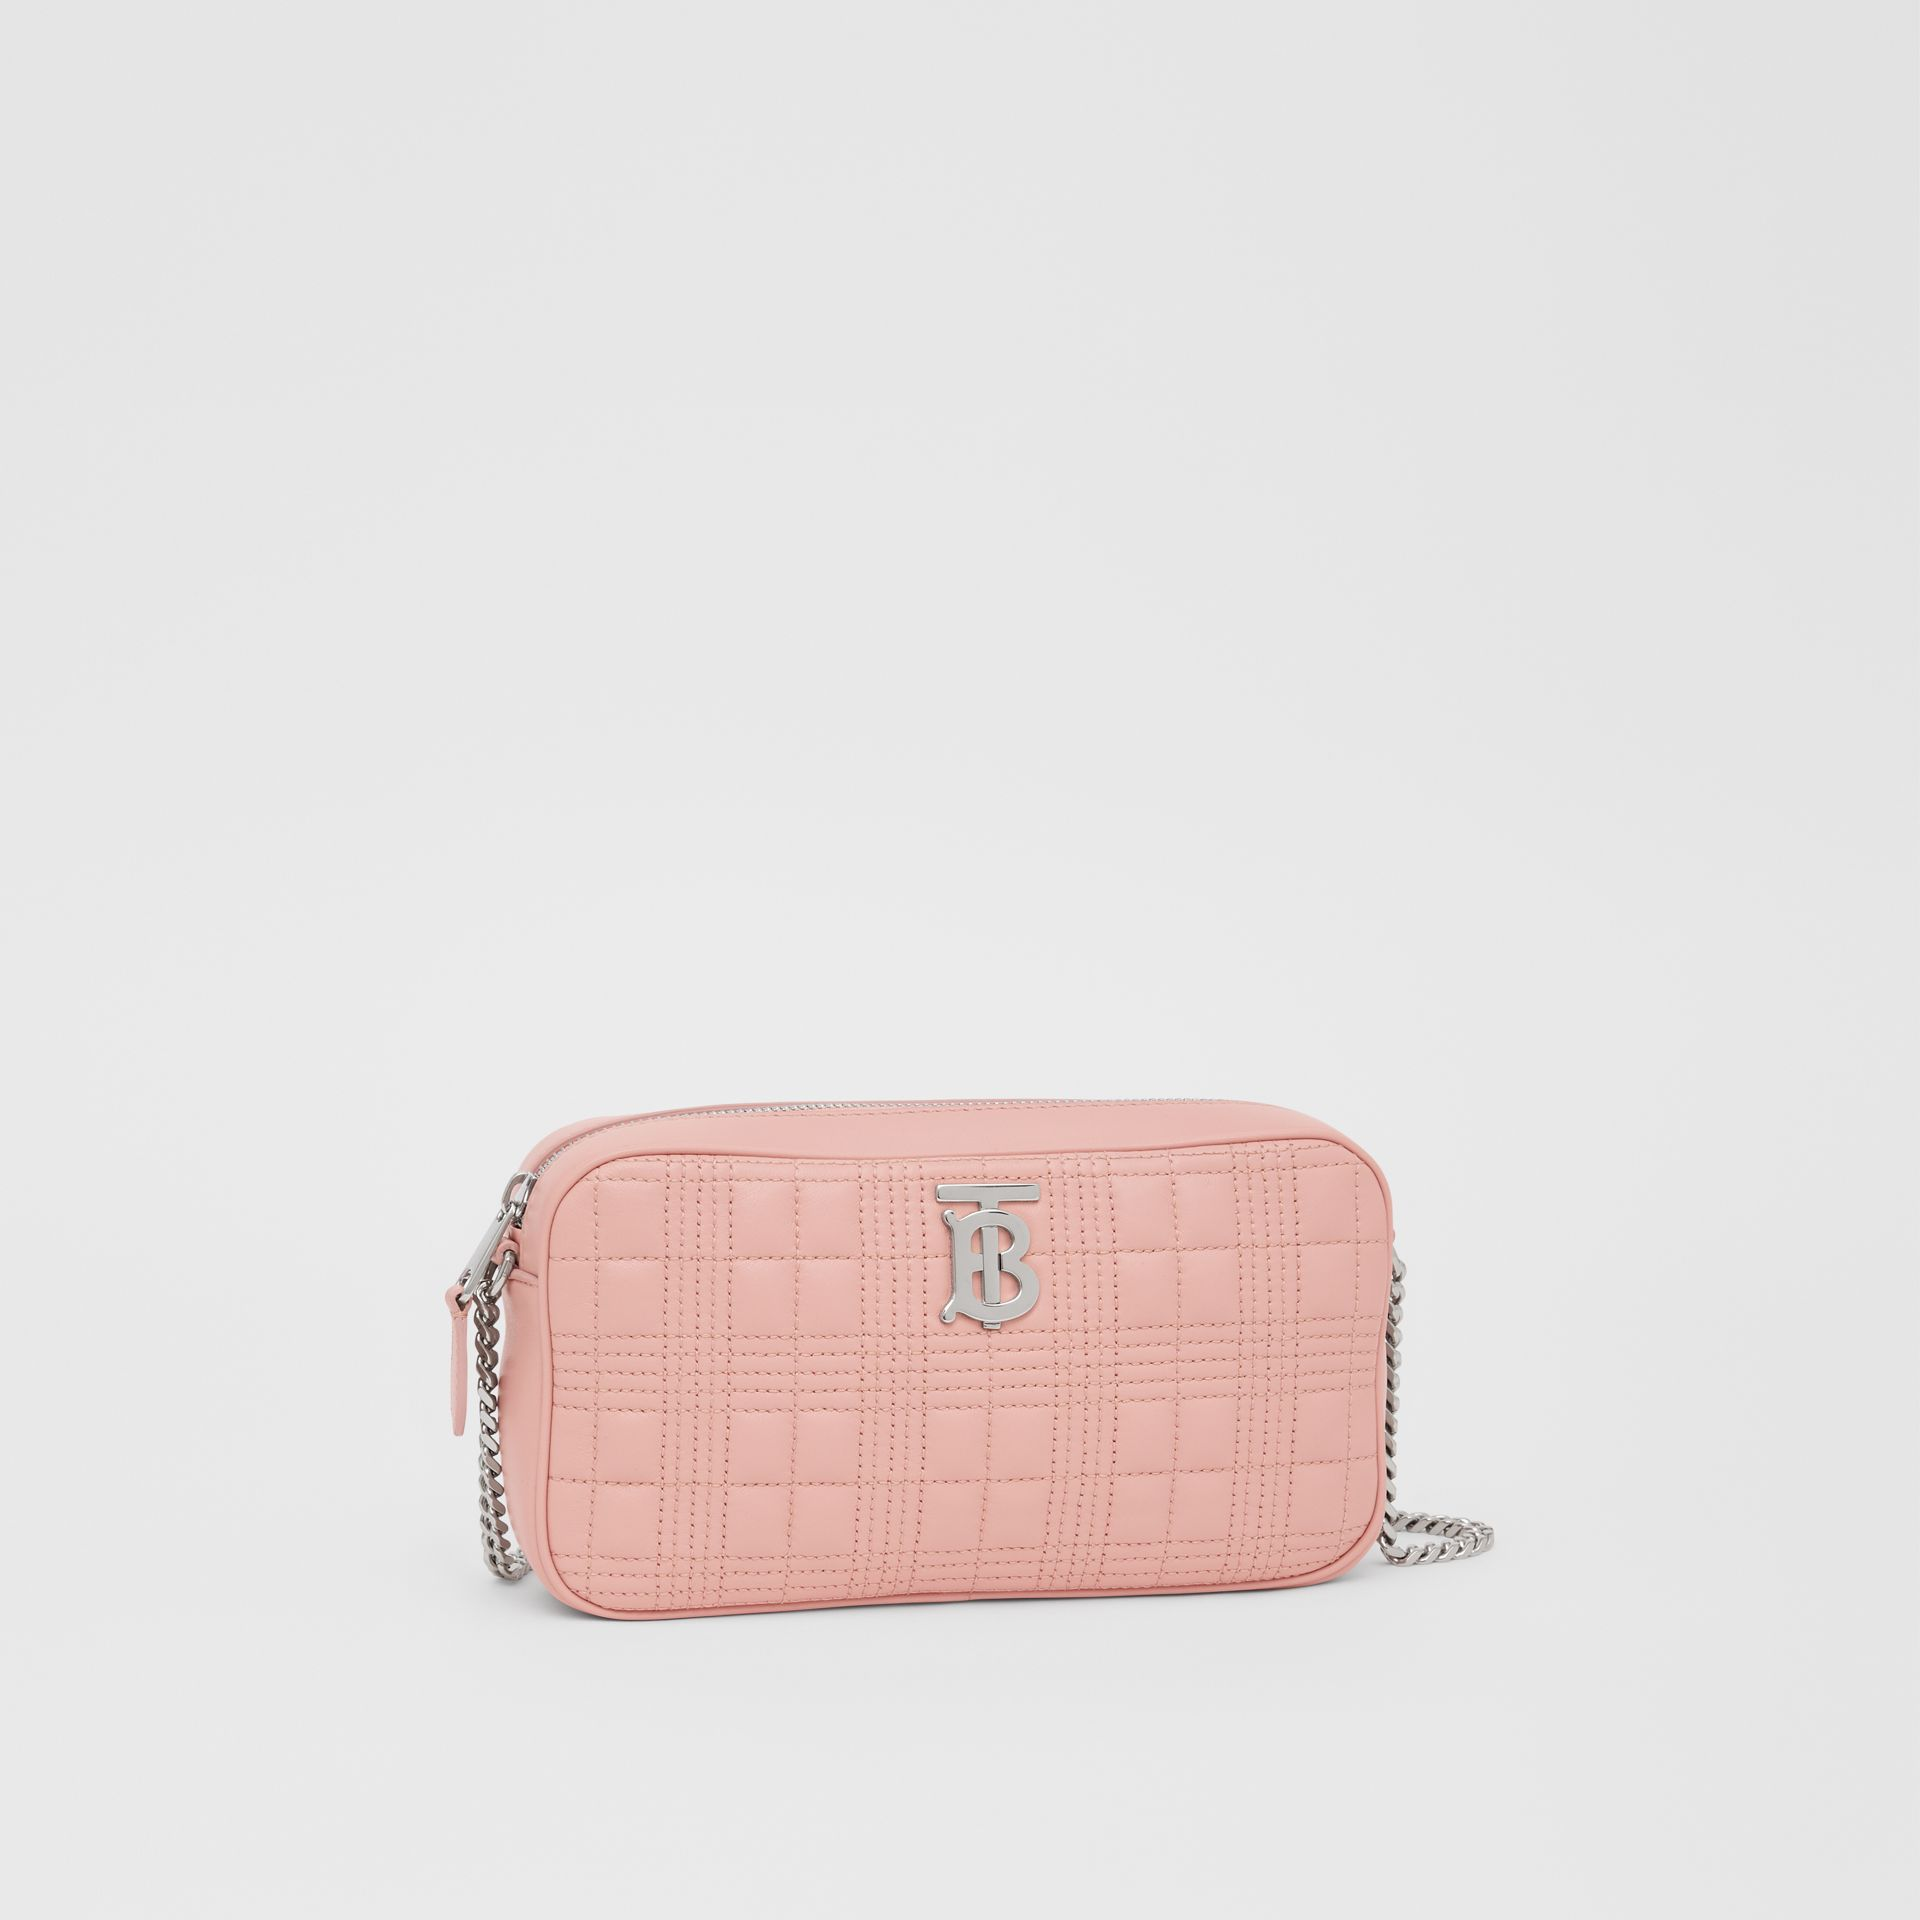 Quilted Lambskin Camera Bag in Blush Pink - Women | Burberry - gallery image 4